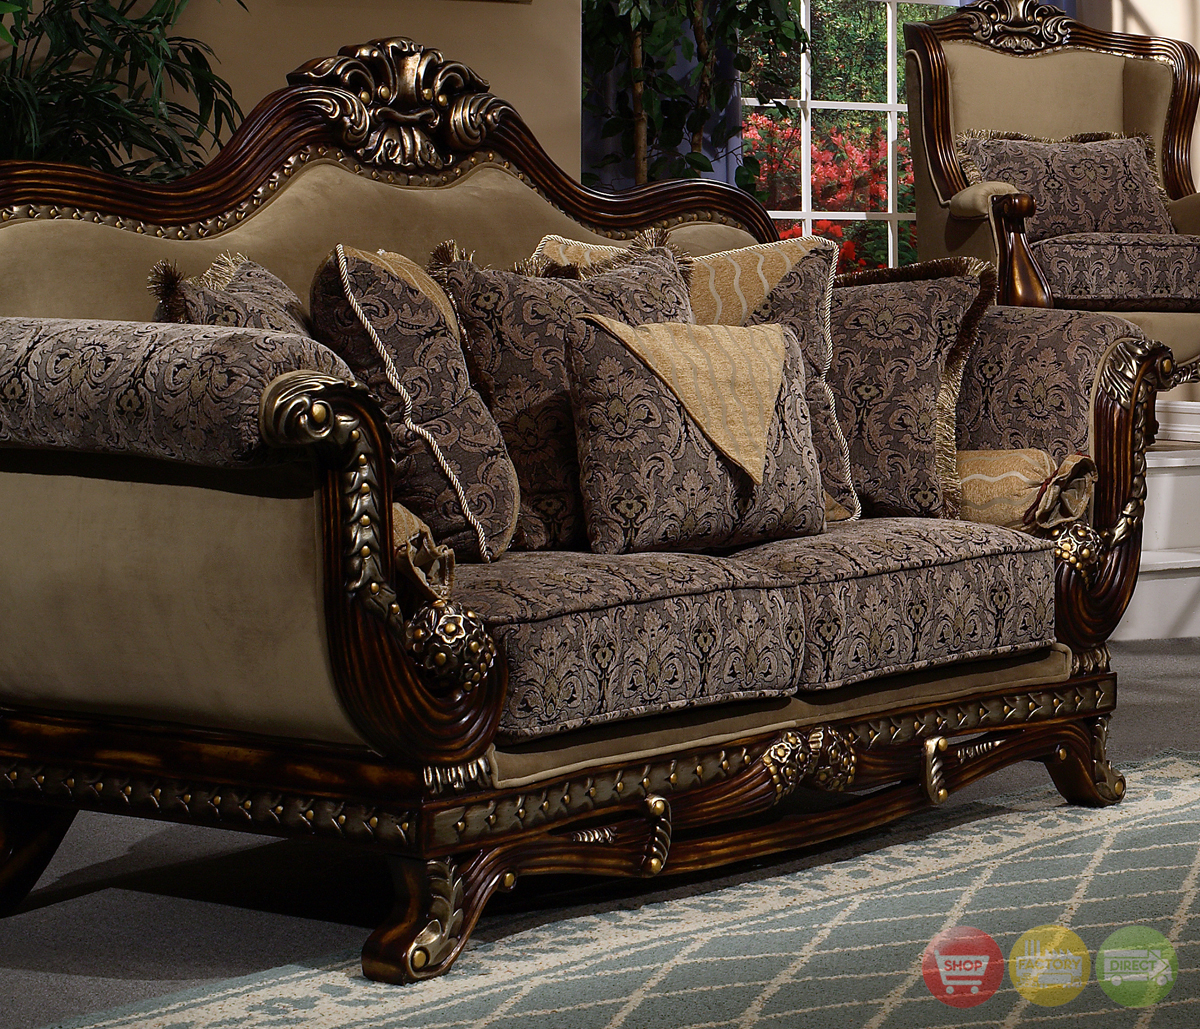 old fashioned sofa styles inspirational antique sofa styles 48 room ideas with thesofa. Black Bedroom Furniture Sets. Home Design Ideas